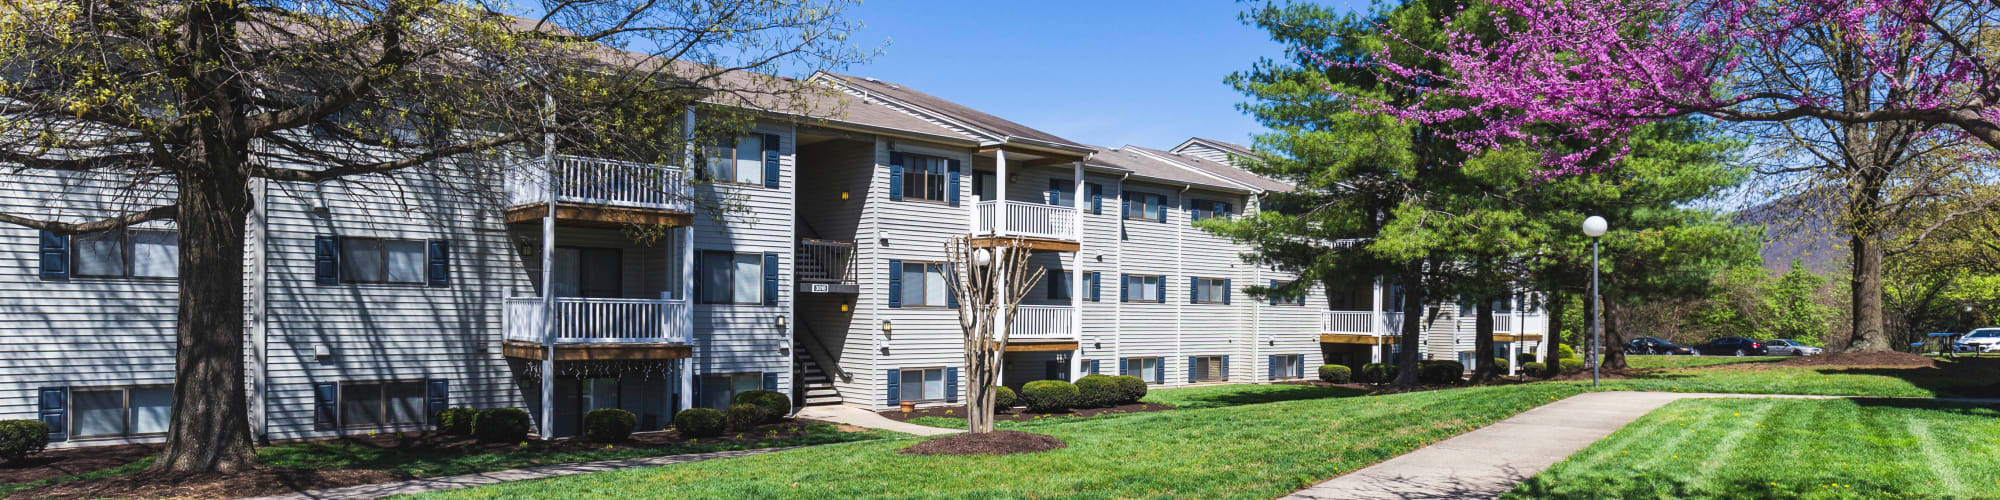 Directions to Hickory Woods Apartments in Roanoke, Virginia